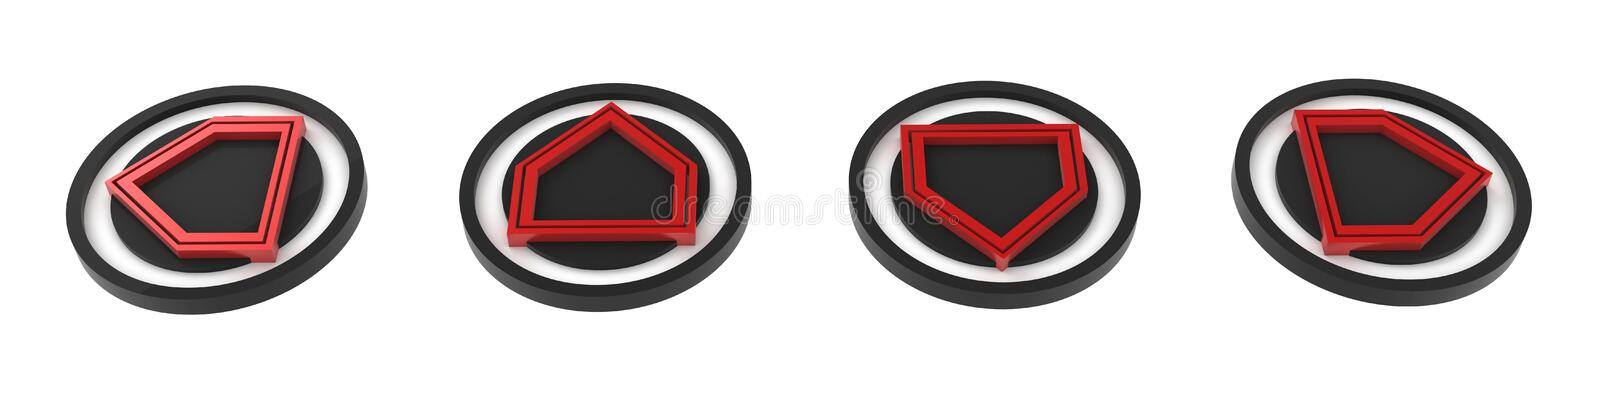 Download 4 Direction Buttons stock illustration. Image of indicate - 5373055